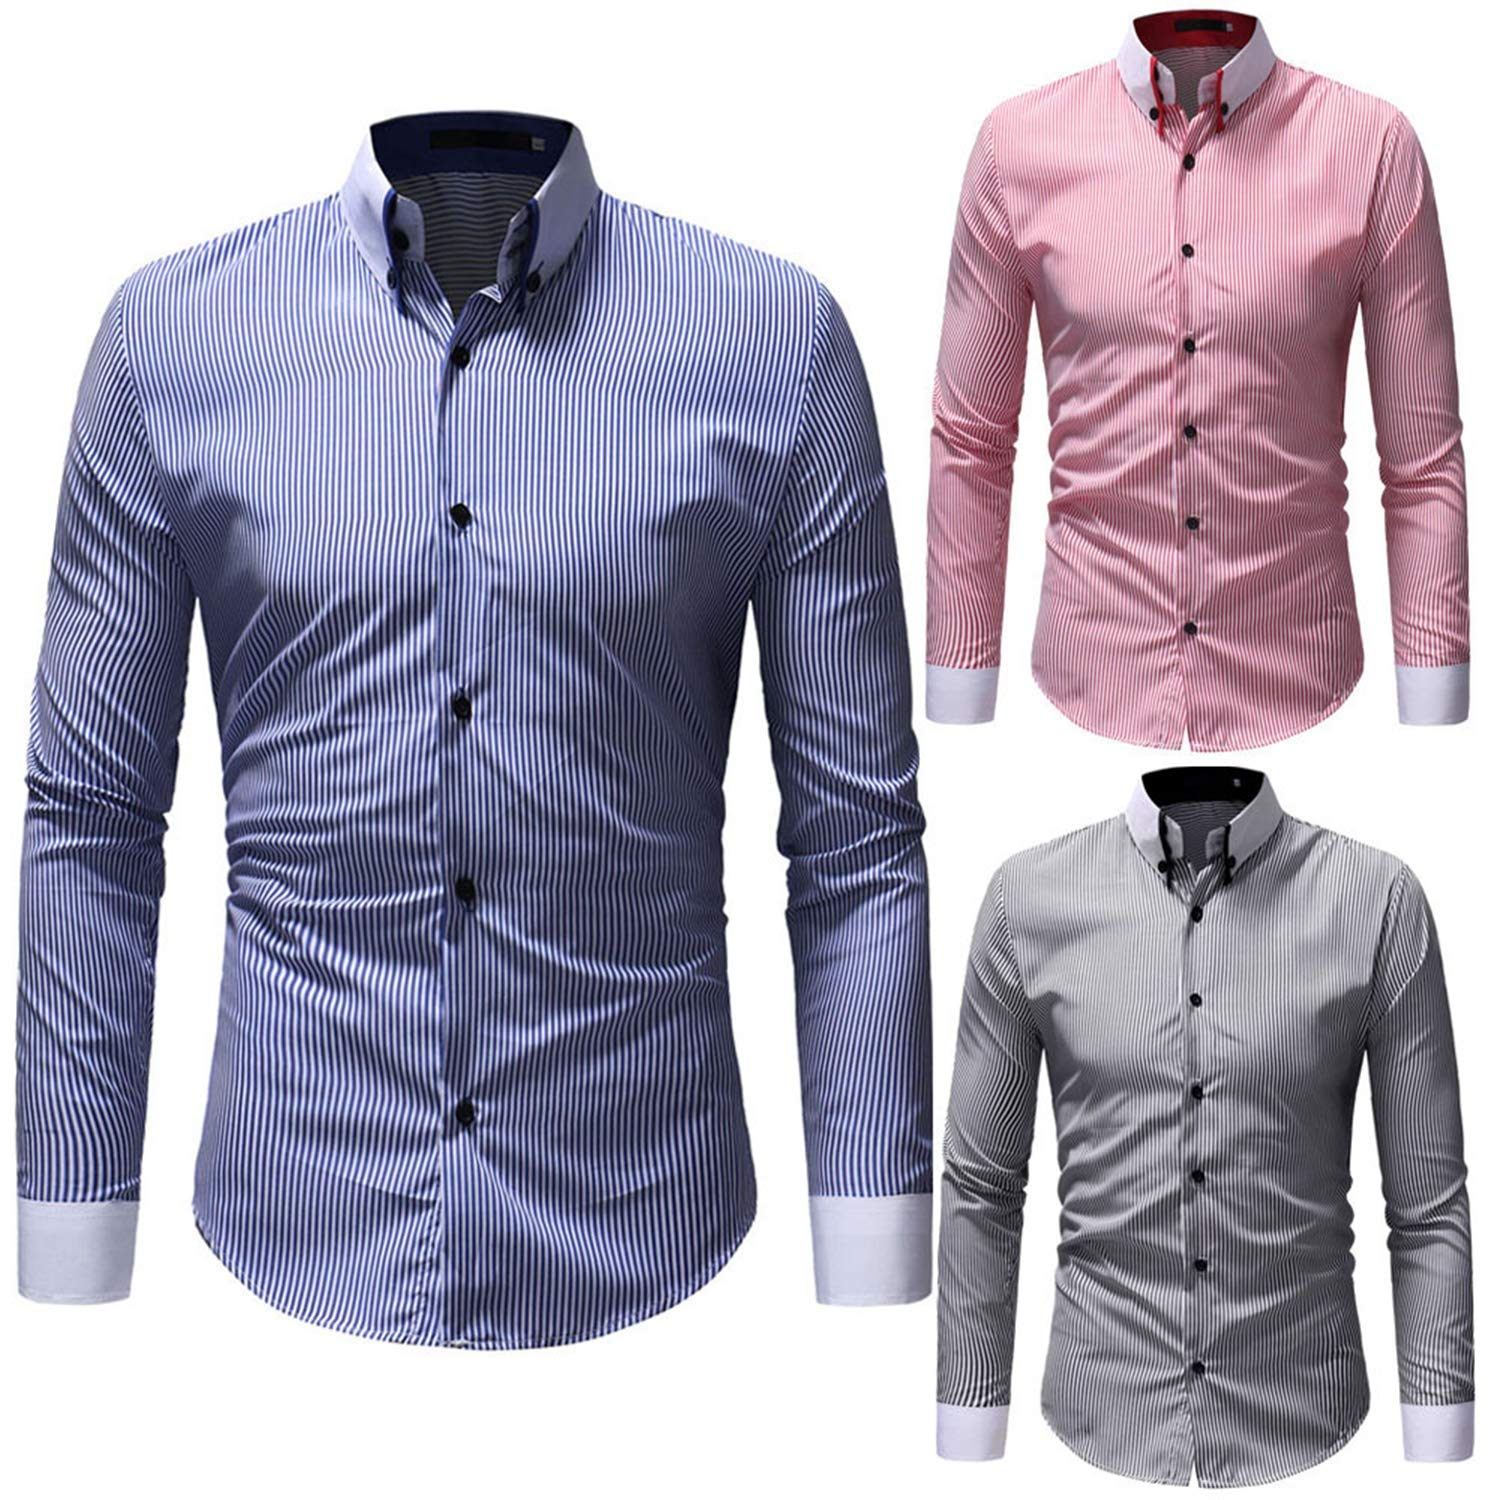 Casual Shirts Men Slim Fit Shirt Mens Autumn Winter Casual Striped Print Long Sleeve Button Top Blouse